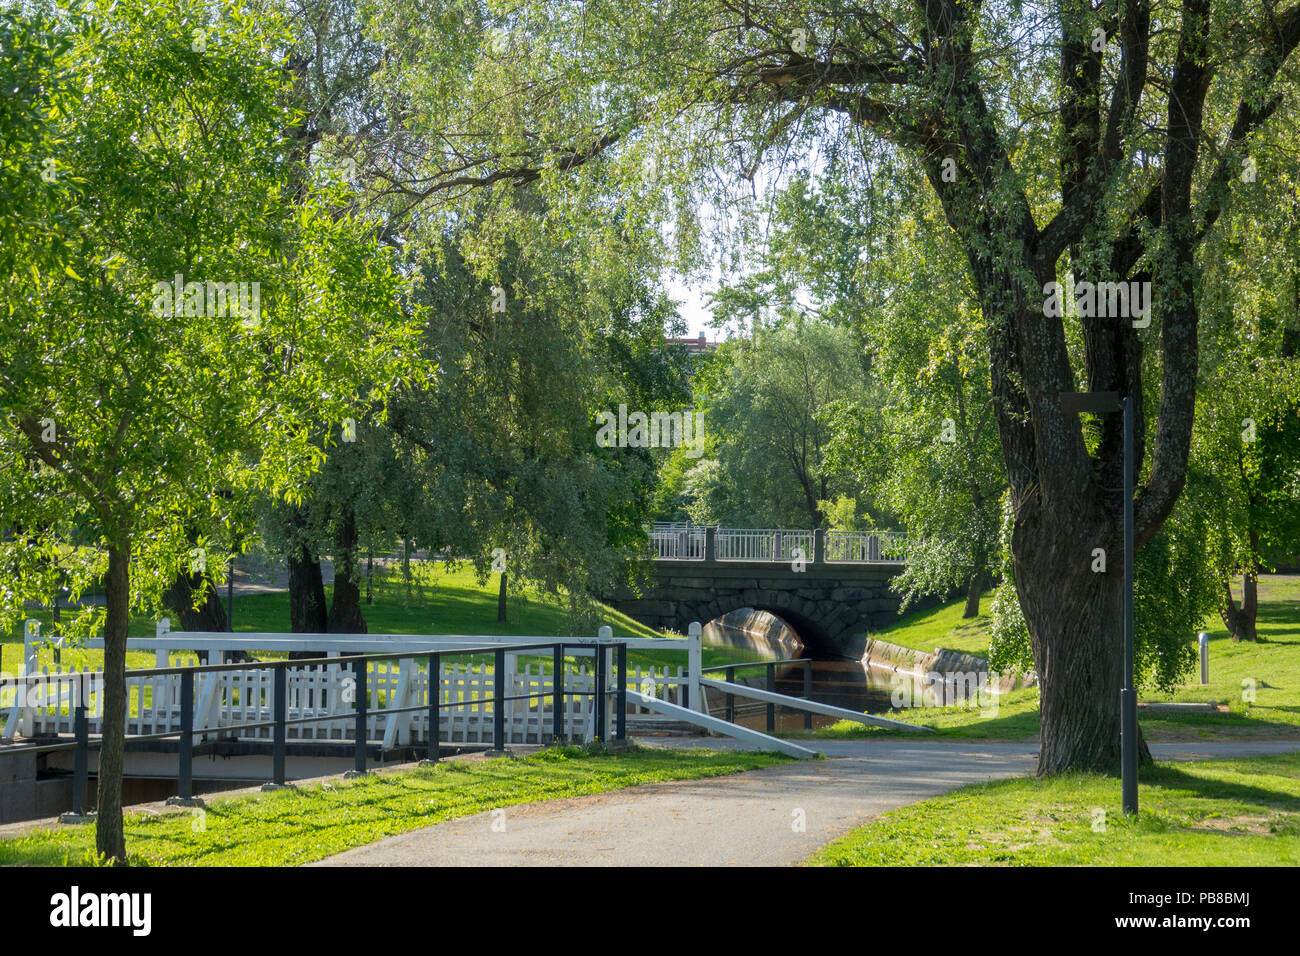 Green park and bridges in Oulu, Finland - Stock Image